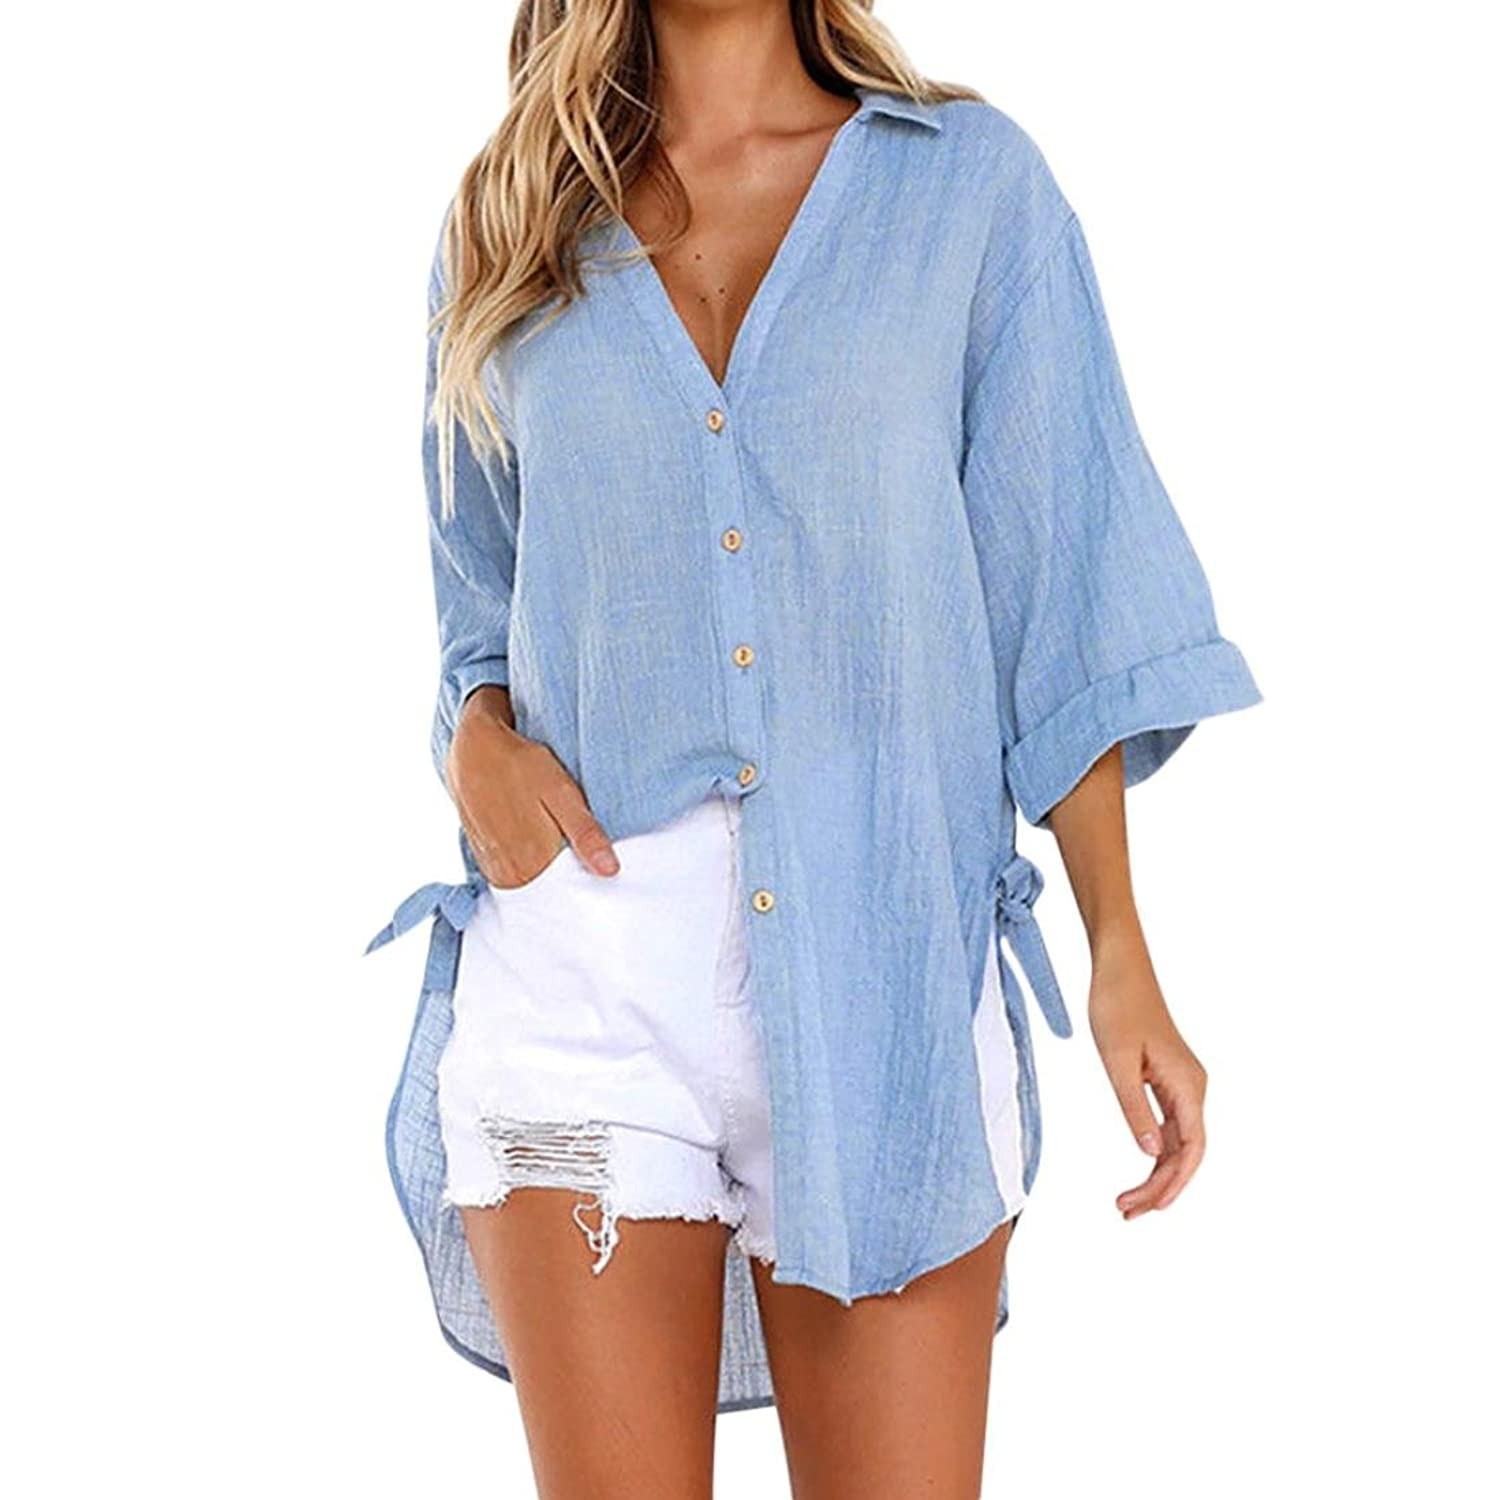 c2e7cfed525f ❊Material:Polyester♥♥Women\'s back lace color block tops long sleeve t-shirts  blouses solid casual chiffon tops t-shirt loose top long sleeve blouse ...